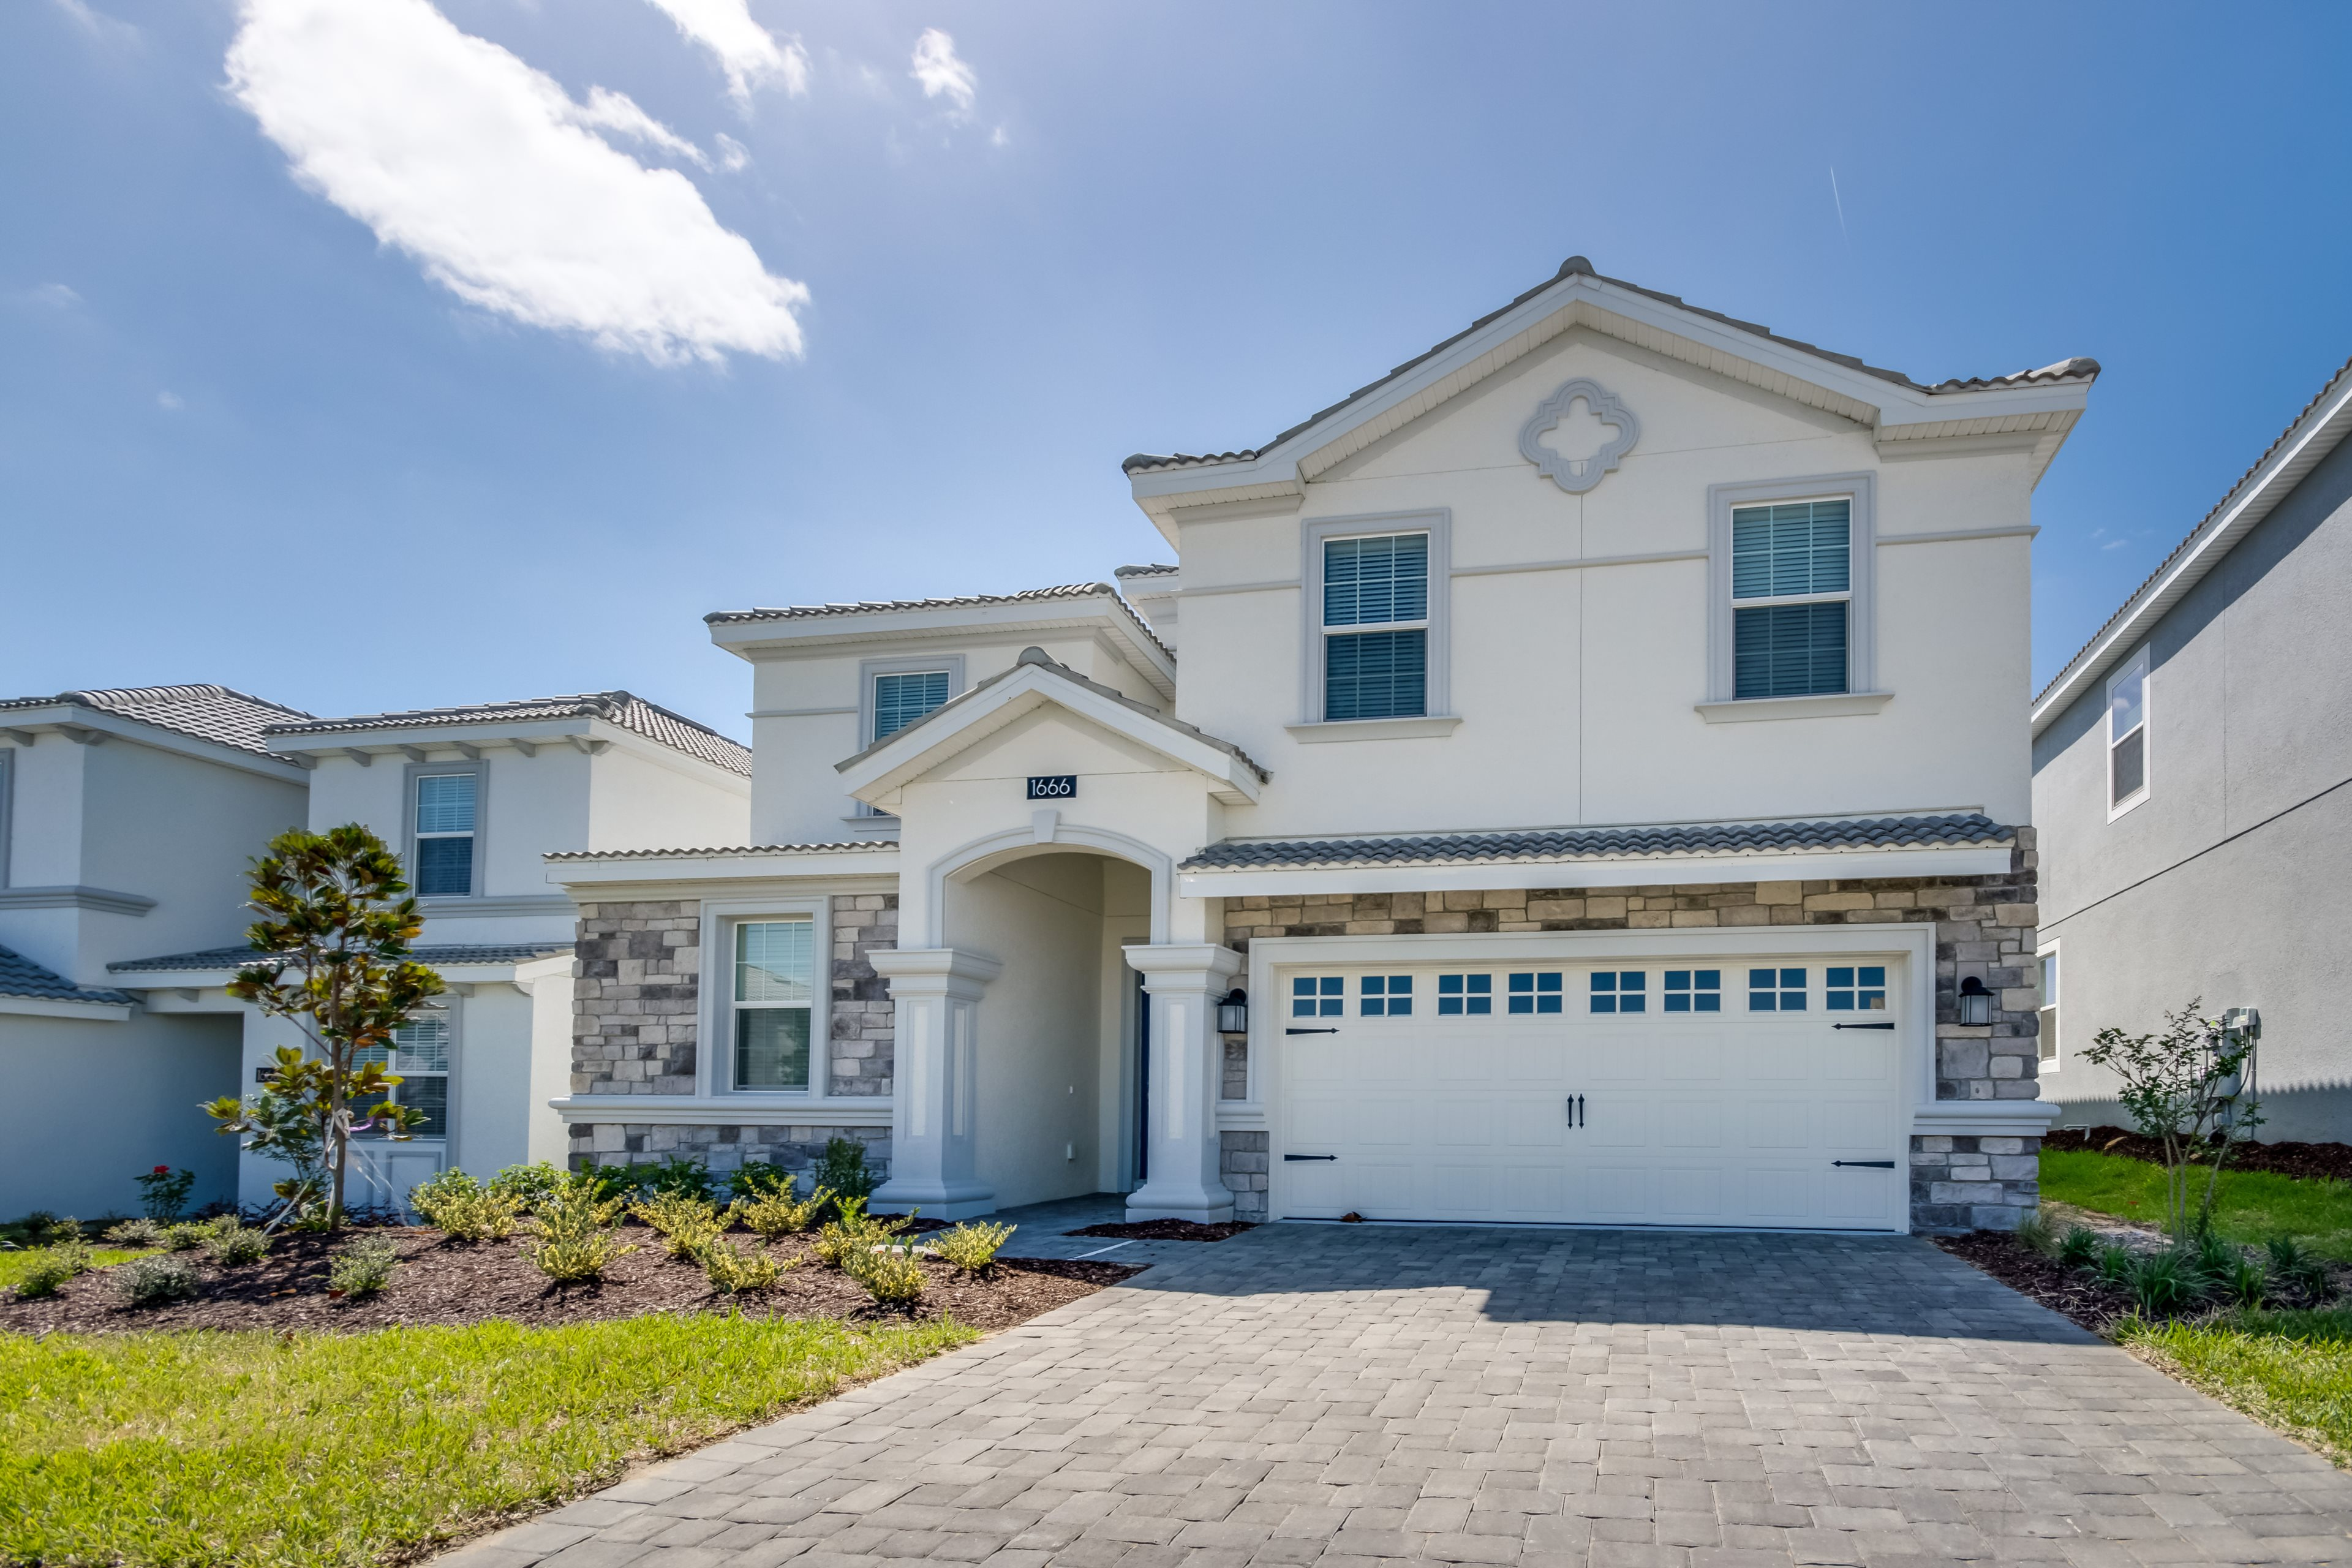 1666mvd Amazing Champions Gate 8 Bedroom 5 Bed Vacation Rentals Entire Villa In Davenport Fl Us Whimstay